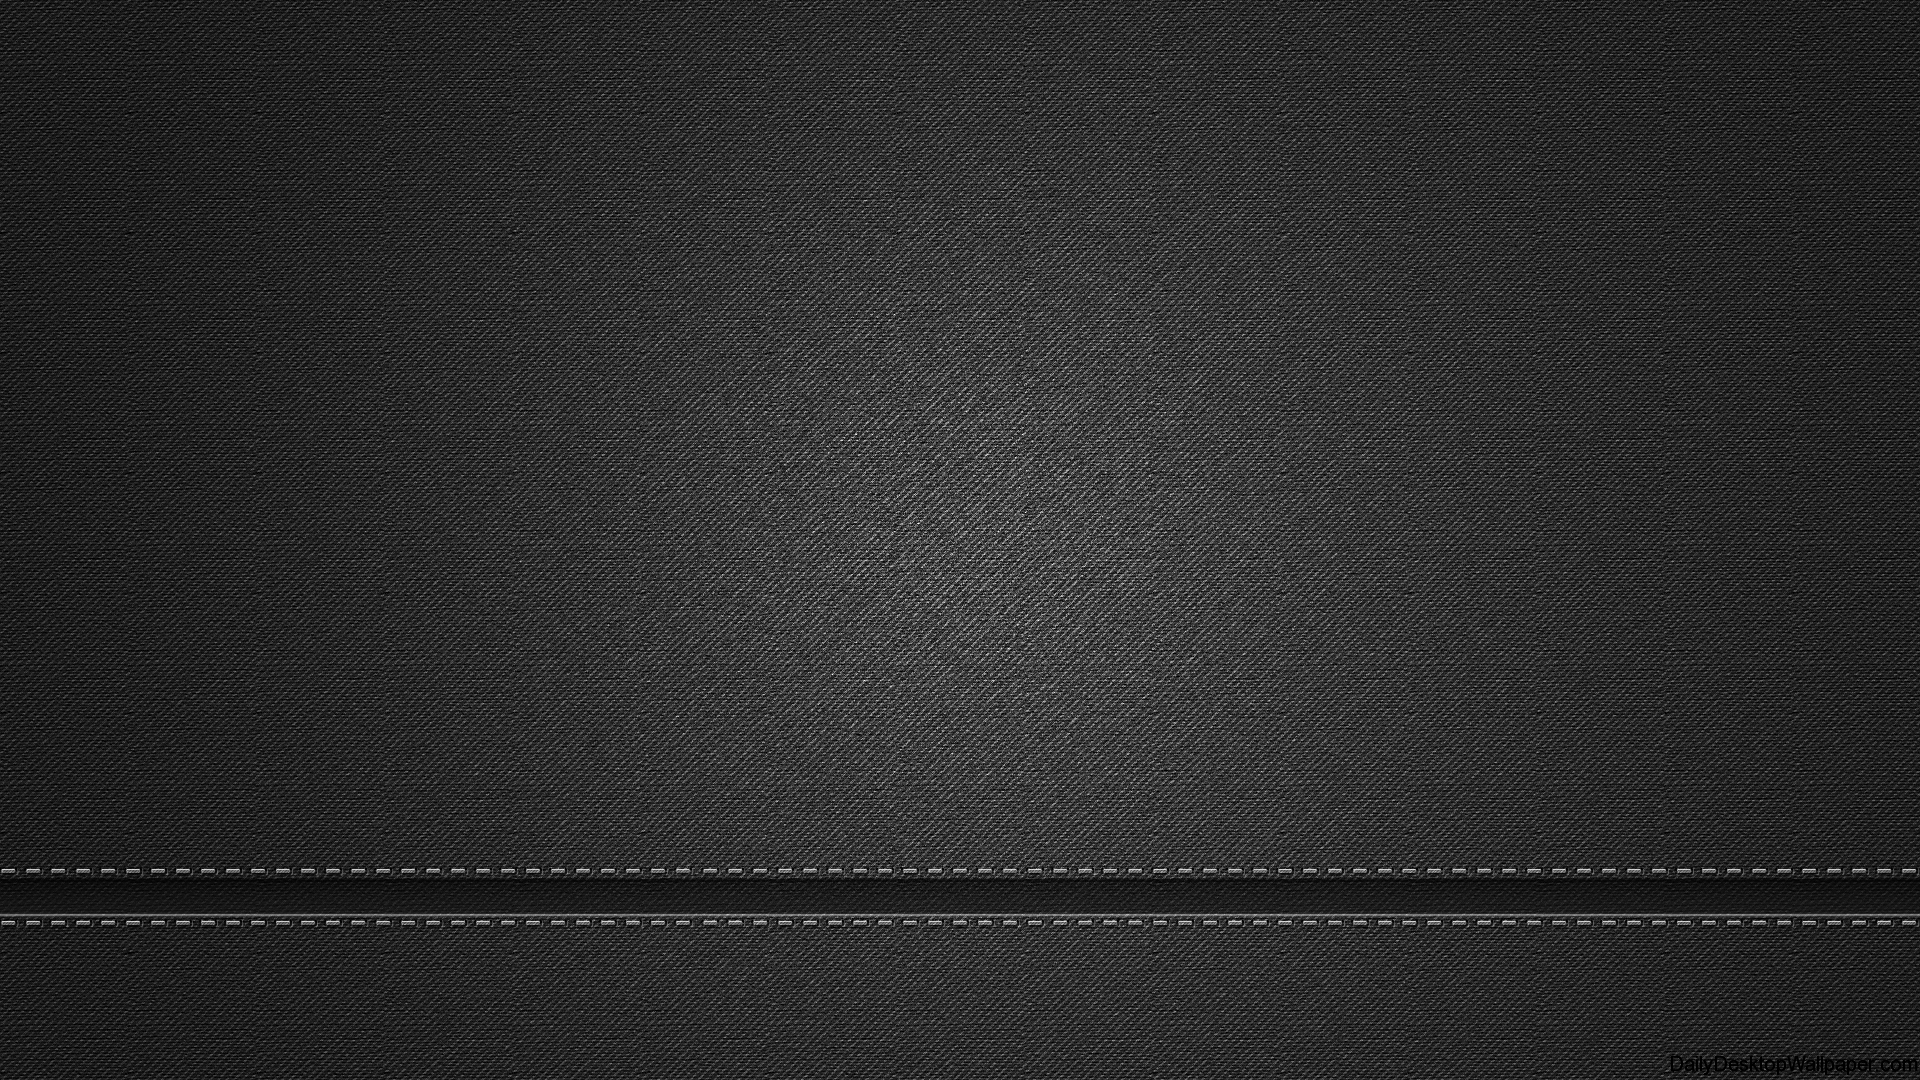 Stitch Pattern Wallpaper